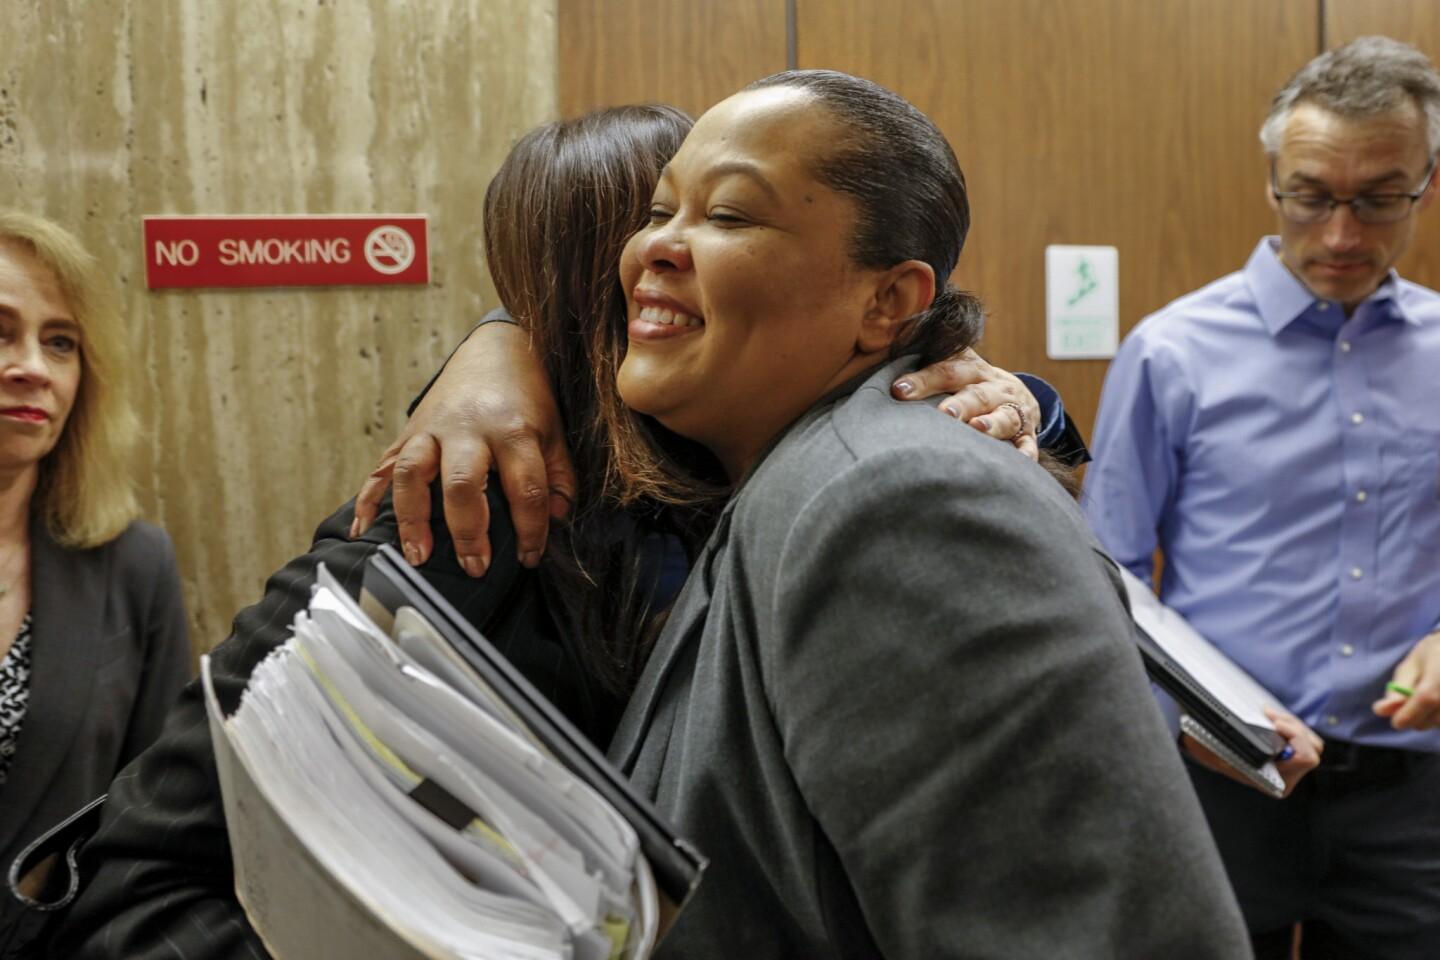 Samara Herard, right, hugs Deputy Dist. Atty. Beth Silverman before speaking to the media about the guilty verdict for Lonnie Franklin Jr. Herard's sister, Princess Berthomieux, 15, was found strangled and beaten March 19, 2002, in an Inglewood alley.